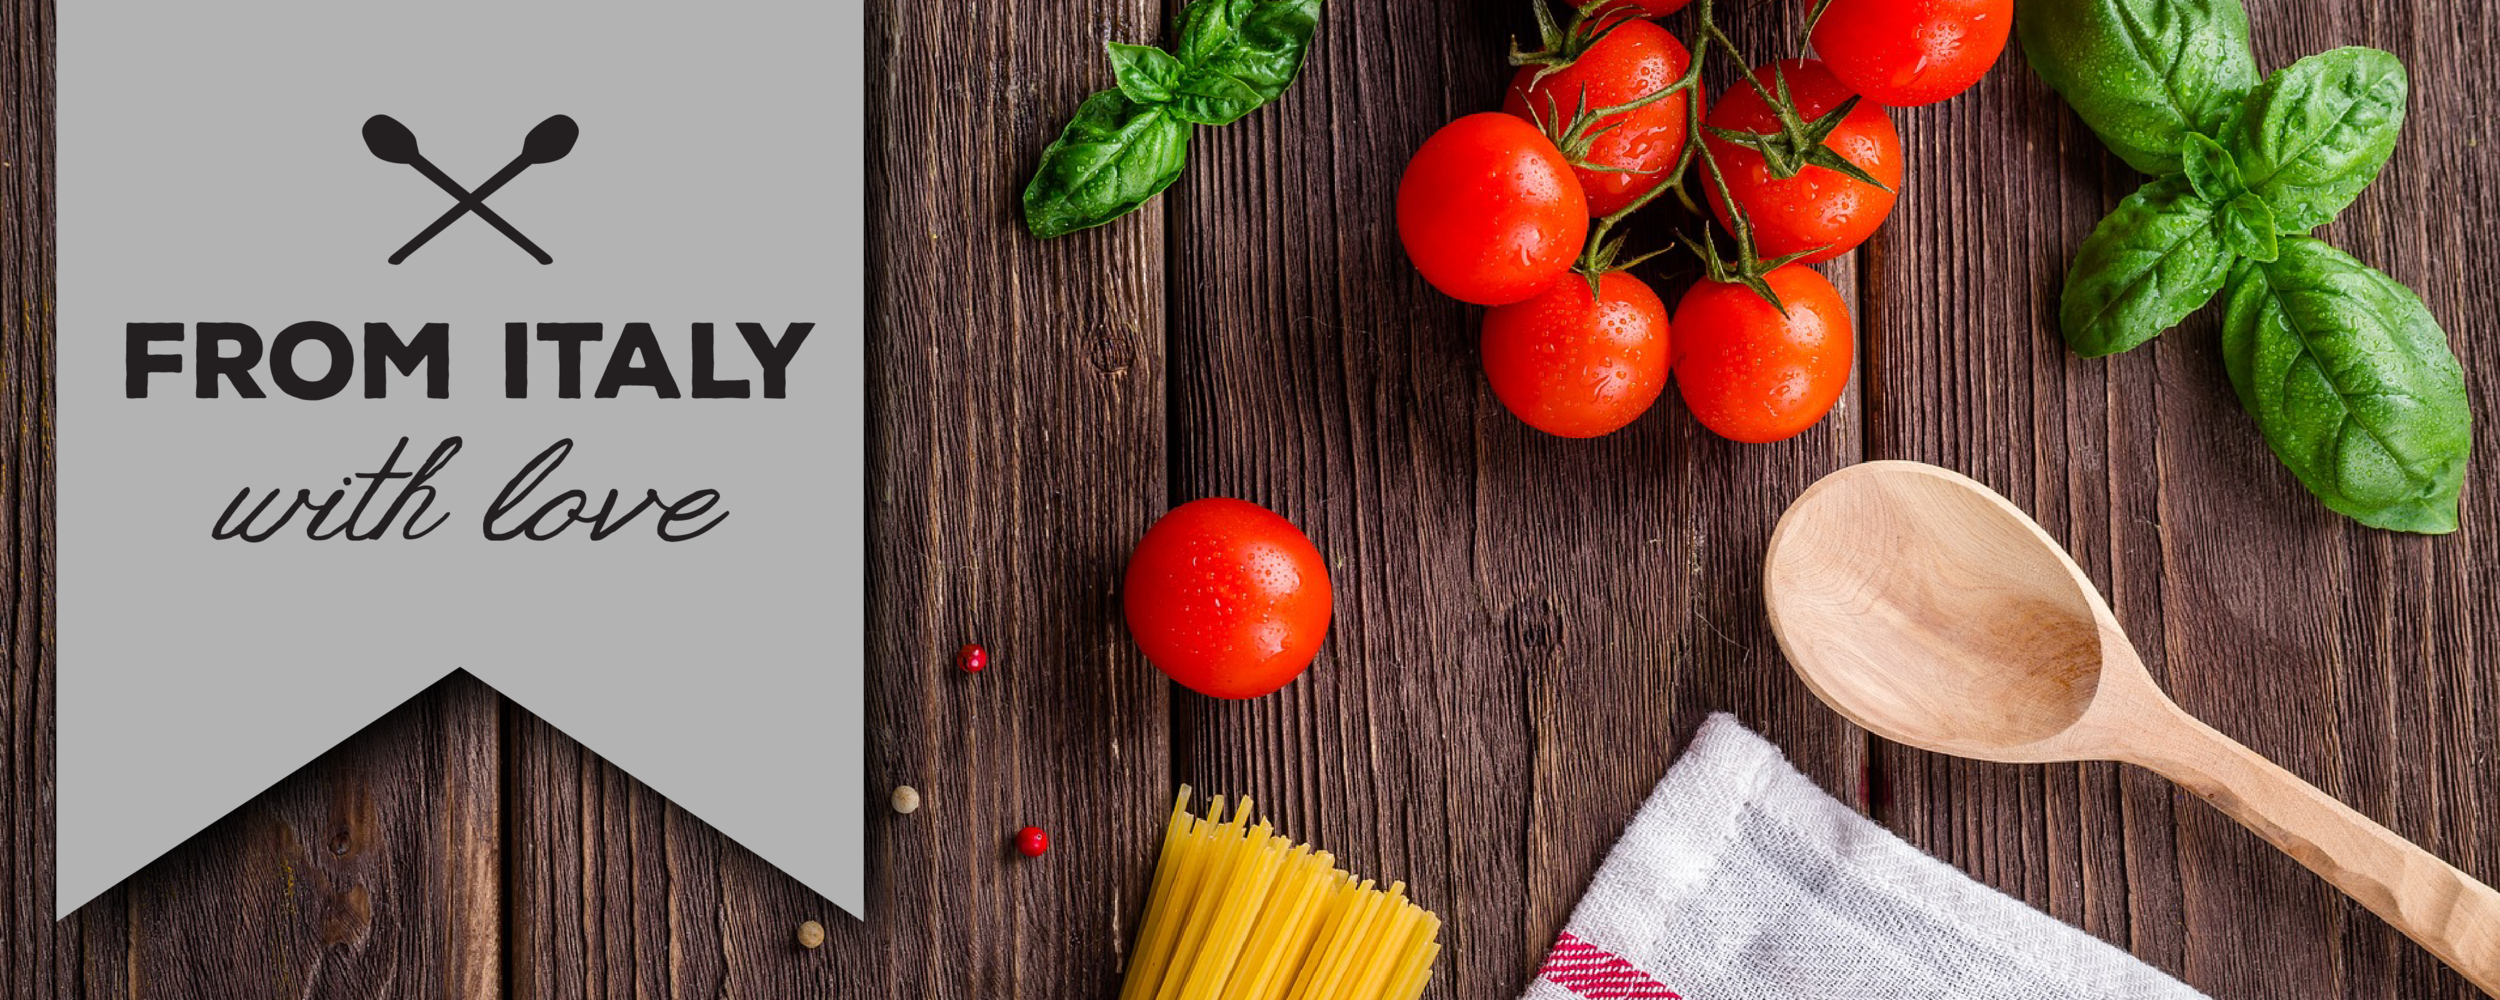 This banner has almost equal parts emphasis on the background image and the blog title. It's the perfect pairing for a cooking blog banner.